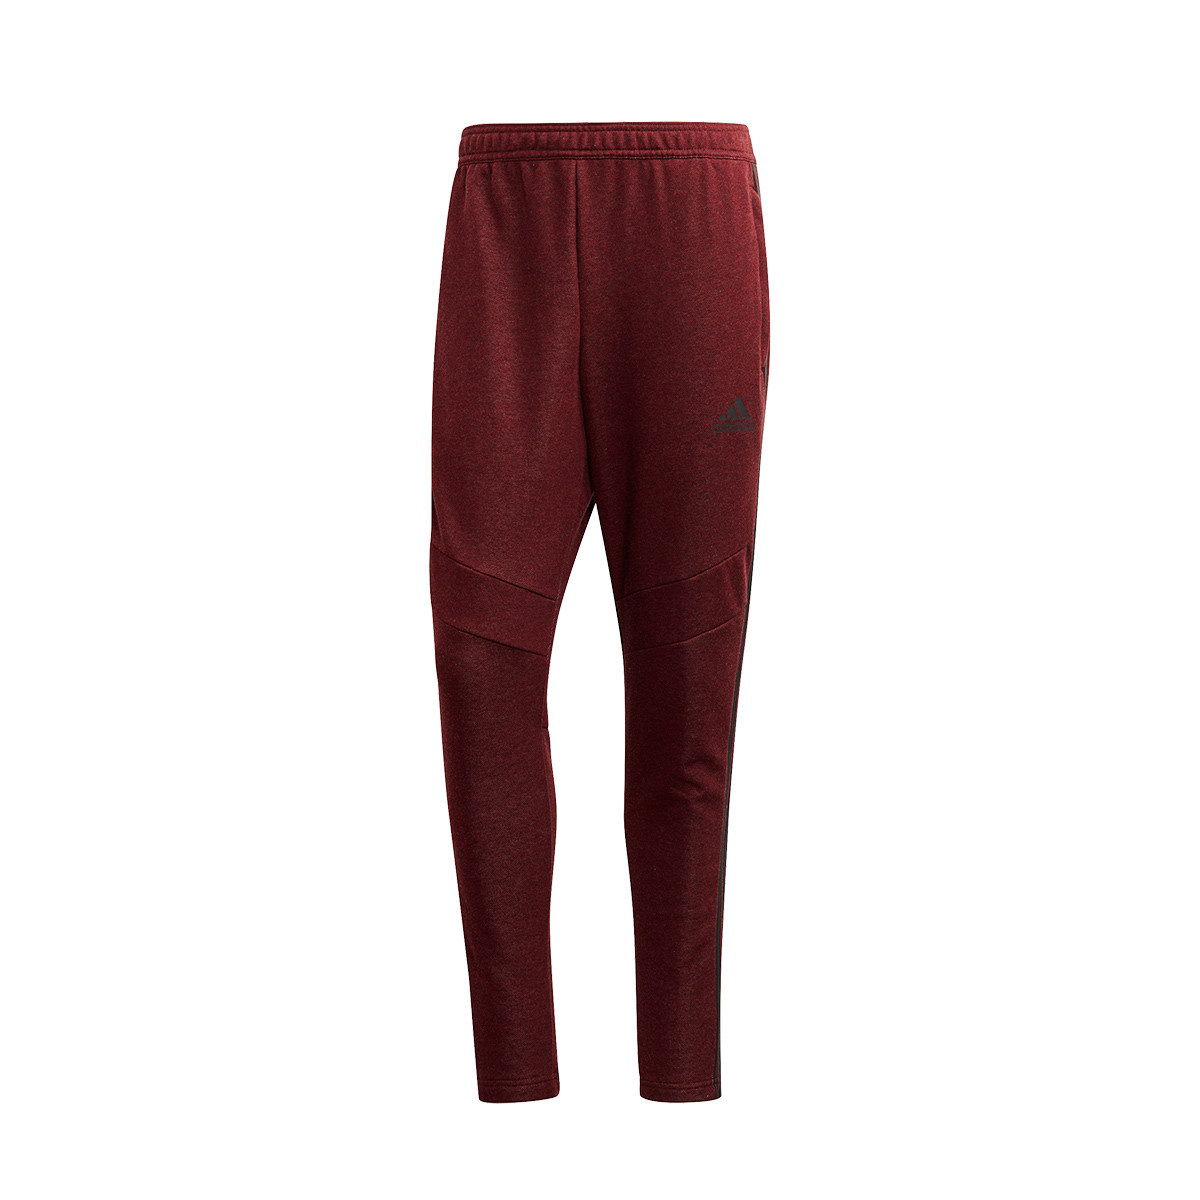 Youth F/Ã/ºtbol Club Barcelona Cotton Sweatpants